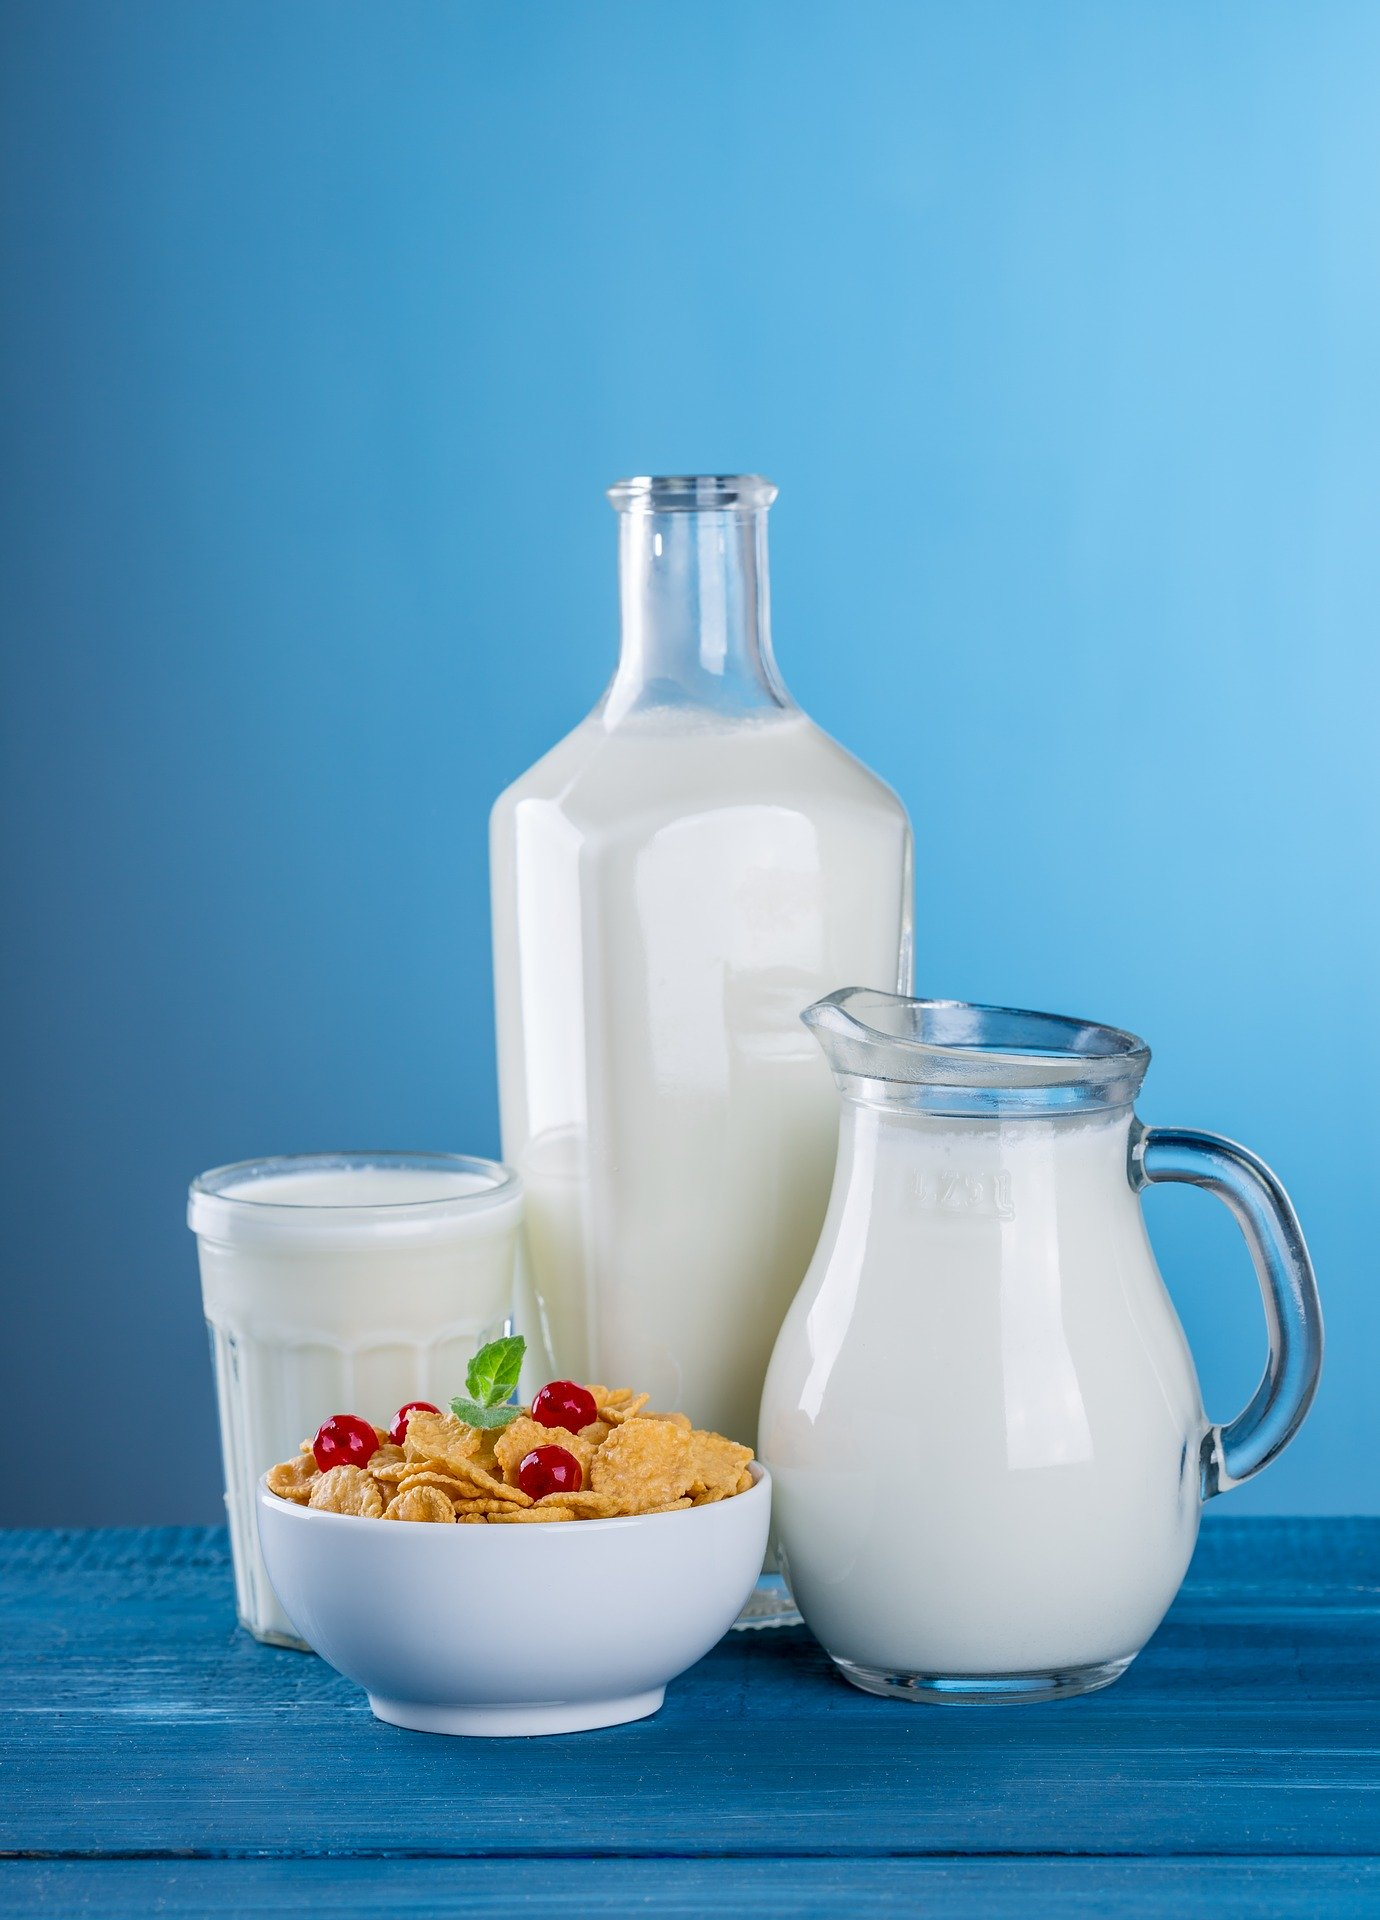 Increase Glutathione Naturally. milk. dairy. breakfast cereal. white. www.blisslife.in